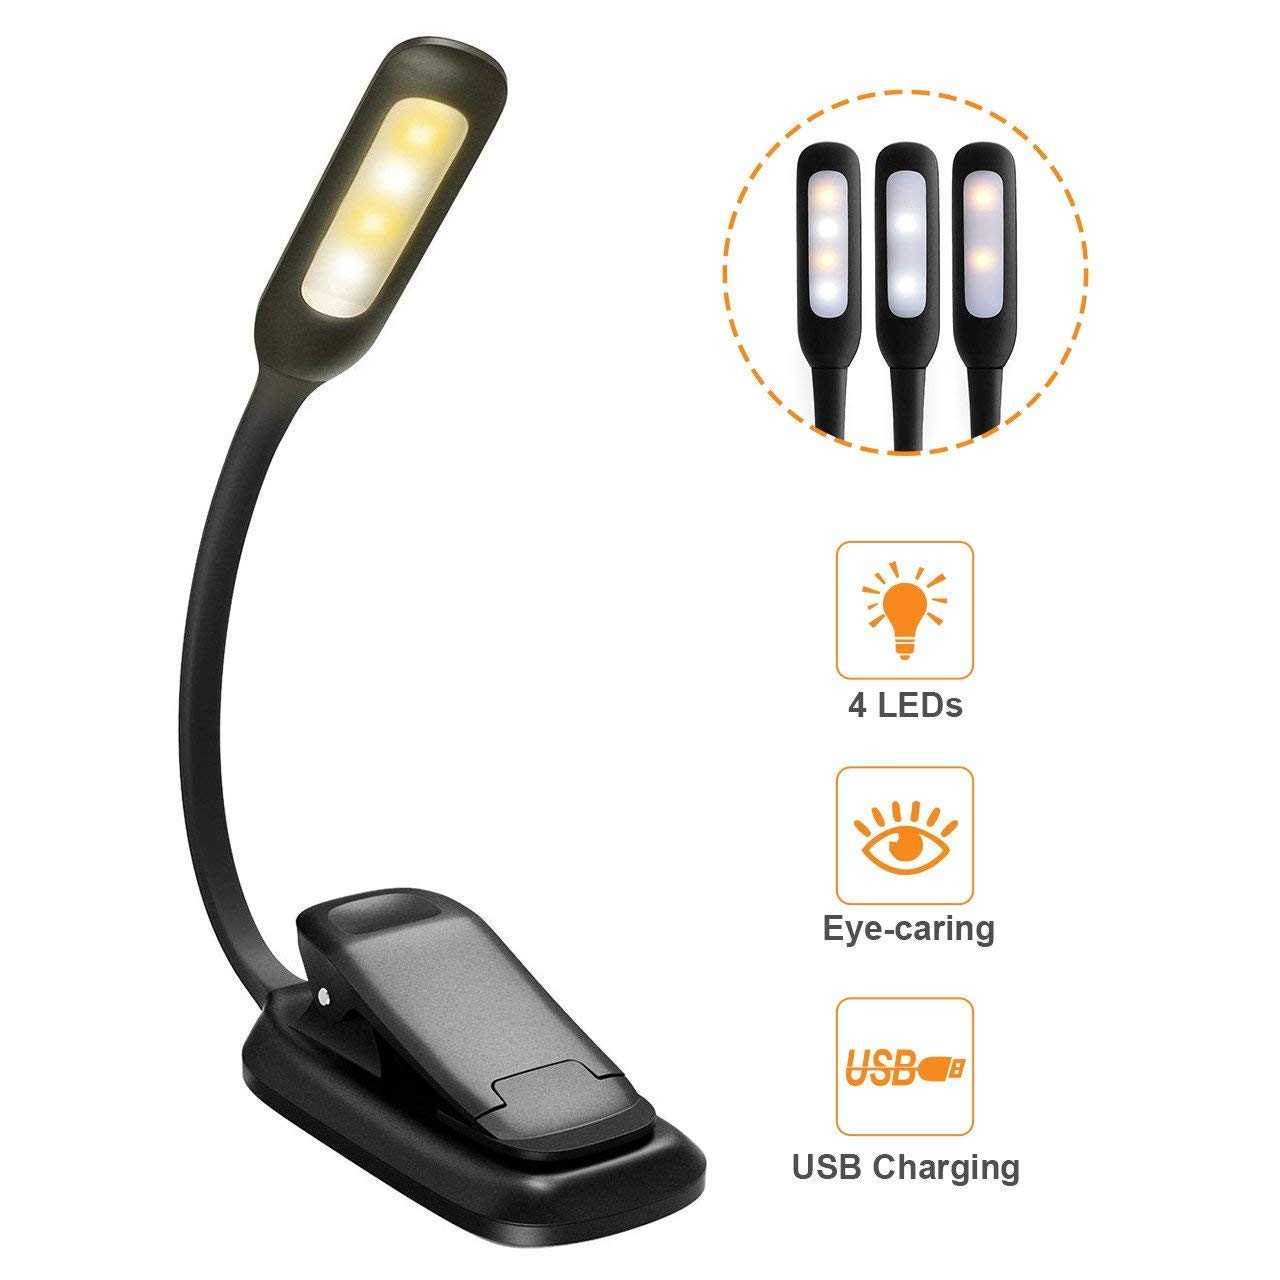 LED Book Light, HOLIFE Mini Rechargeable Reading Lights Portable Easy Clip on Reading Lamp Soft Table Light with 3-Level Brightness, Eye-Care Protection for Bookworms, Night Reading, Kindle